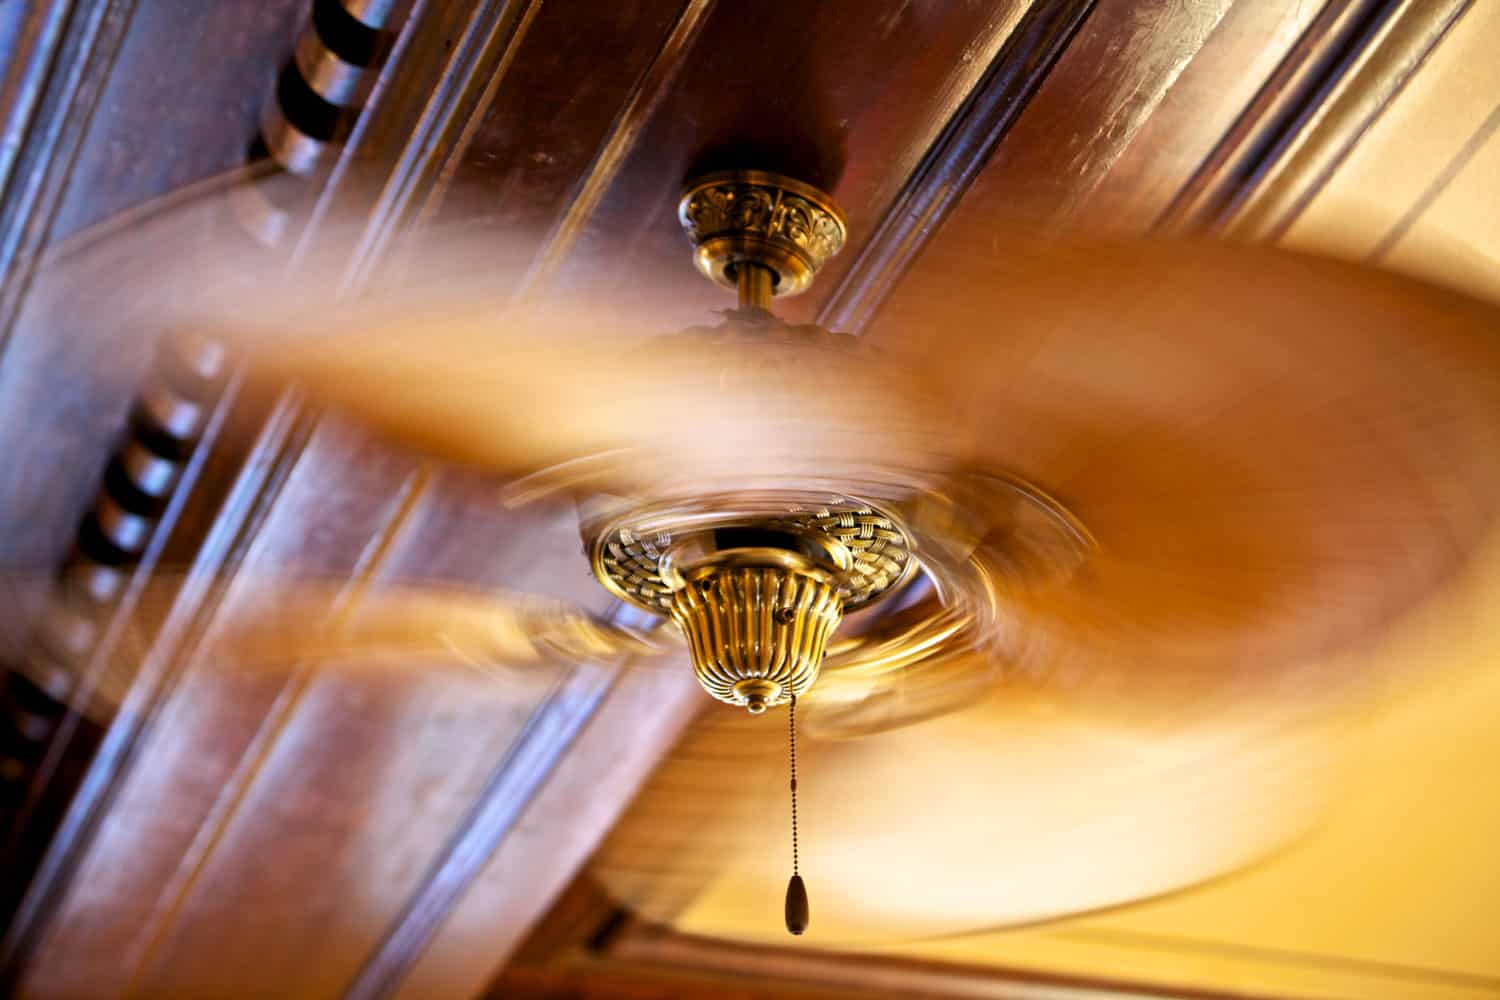 A wobbling ceiling fan photographed at high speeds